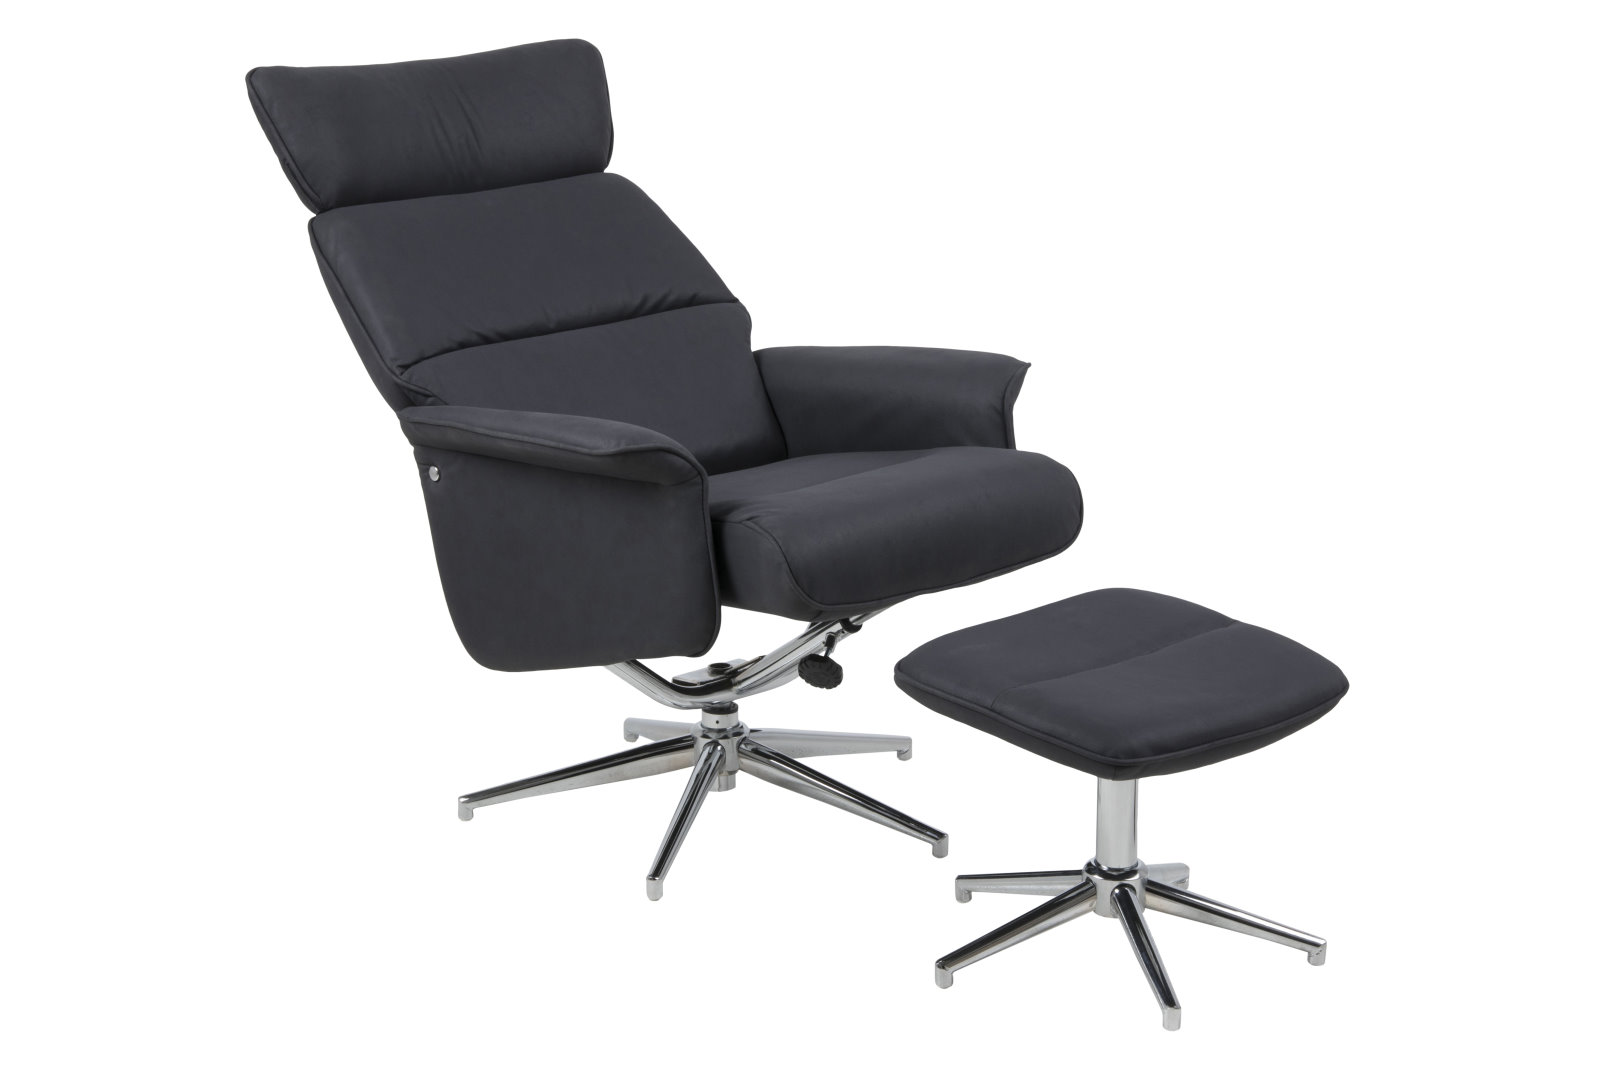 Full Size of Coole Wohnzimmer Sessel Wohnzimmer Sessel Kaufen Wohnzimmer Sessel Leder Wohnzimmer Sessel Mömax Wohnzimmer Wohnzimmer Sessel